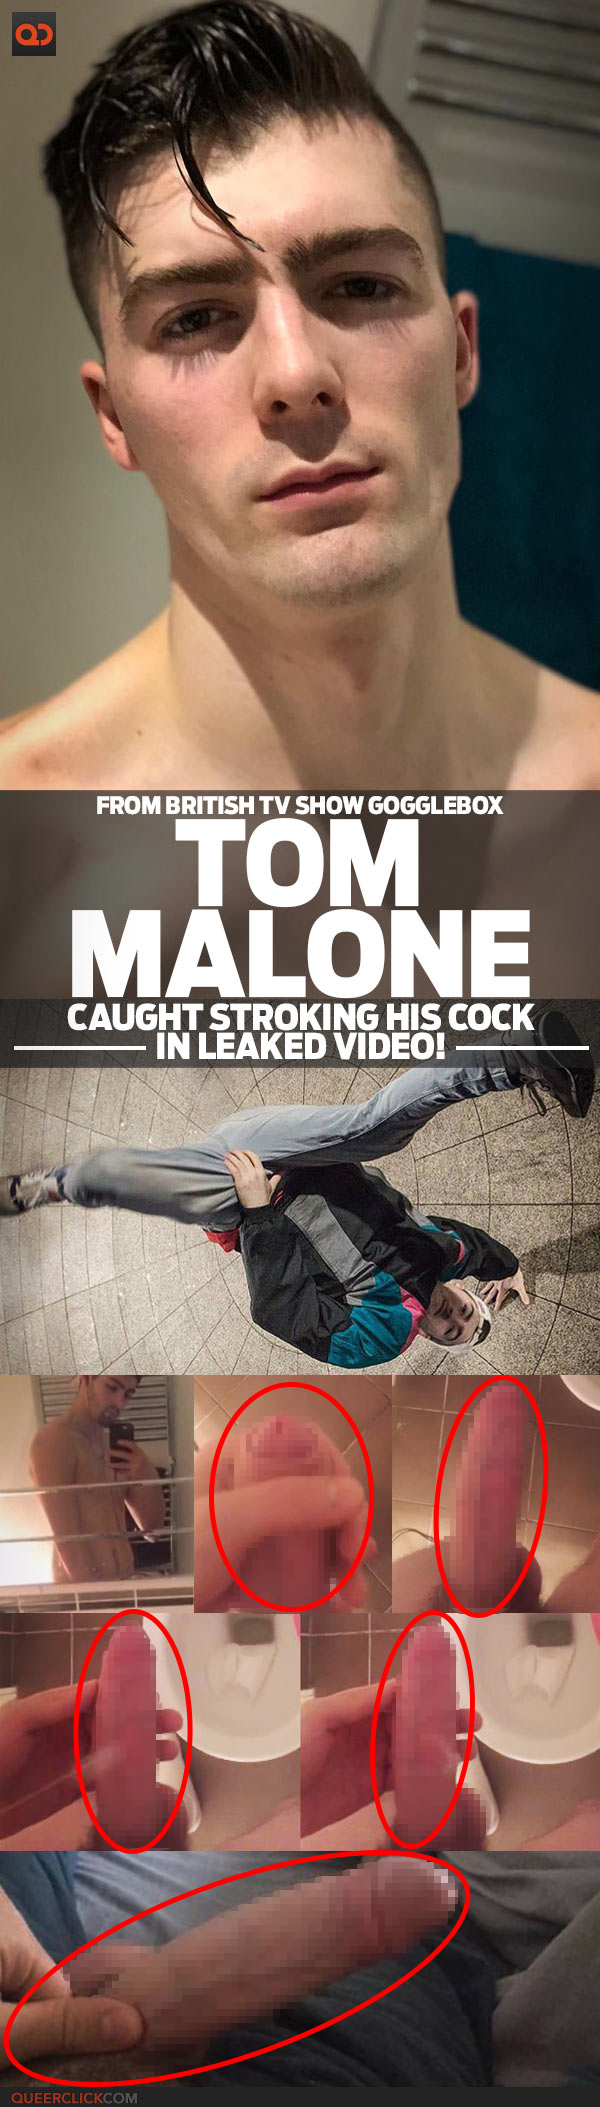 Tom Malone, From British TV Show Gogglebox, Caught Stroking His Cock In Leaked Video!